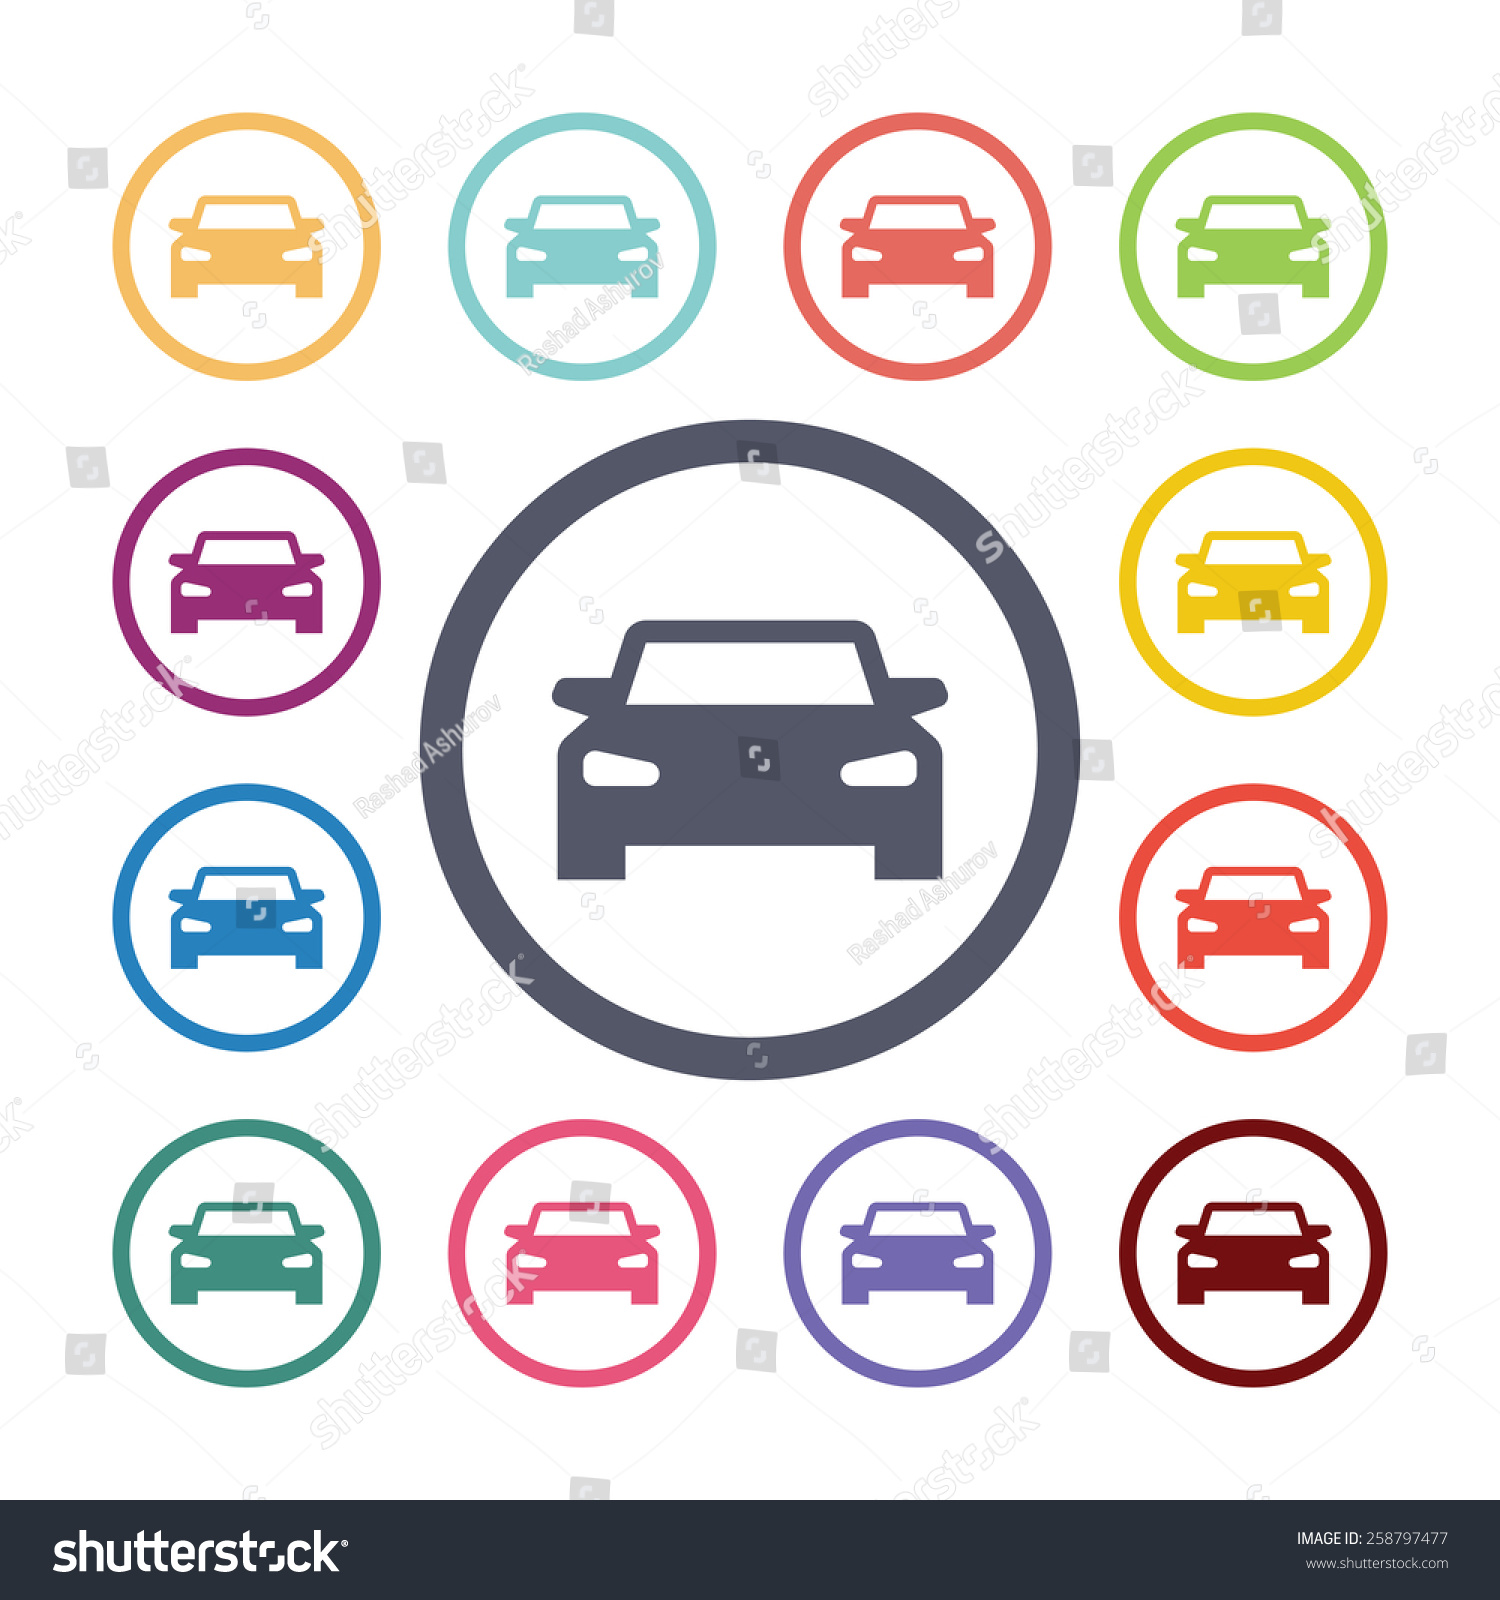 car flat icons set open colorful stock illustration 258797477 shutterstock. Black Bedroom Furniture Sets. Home Design Ideas